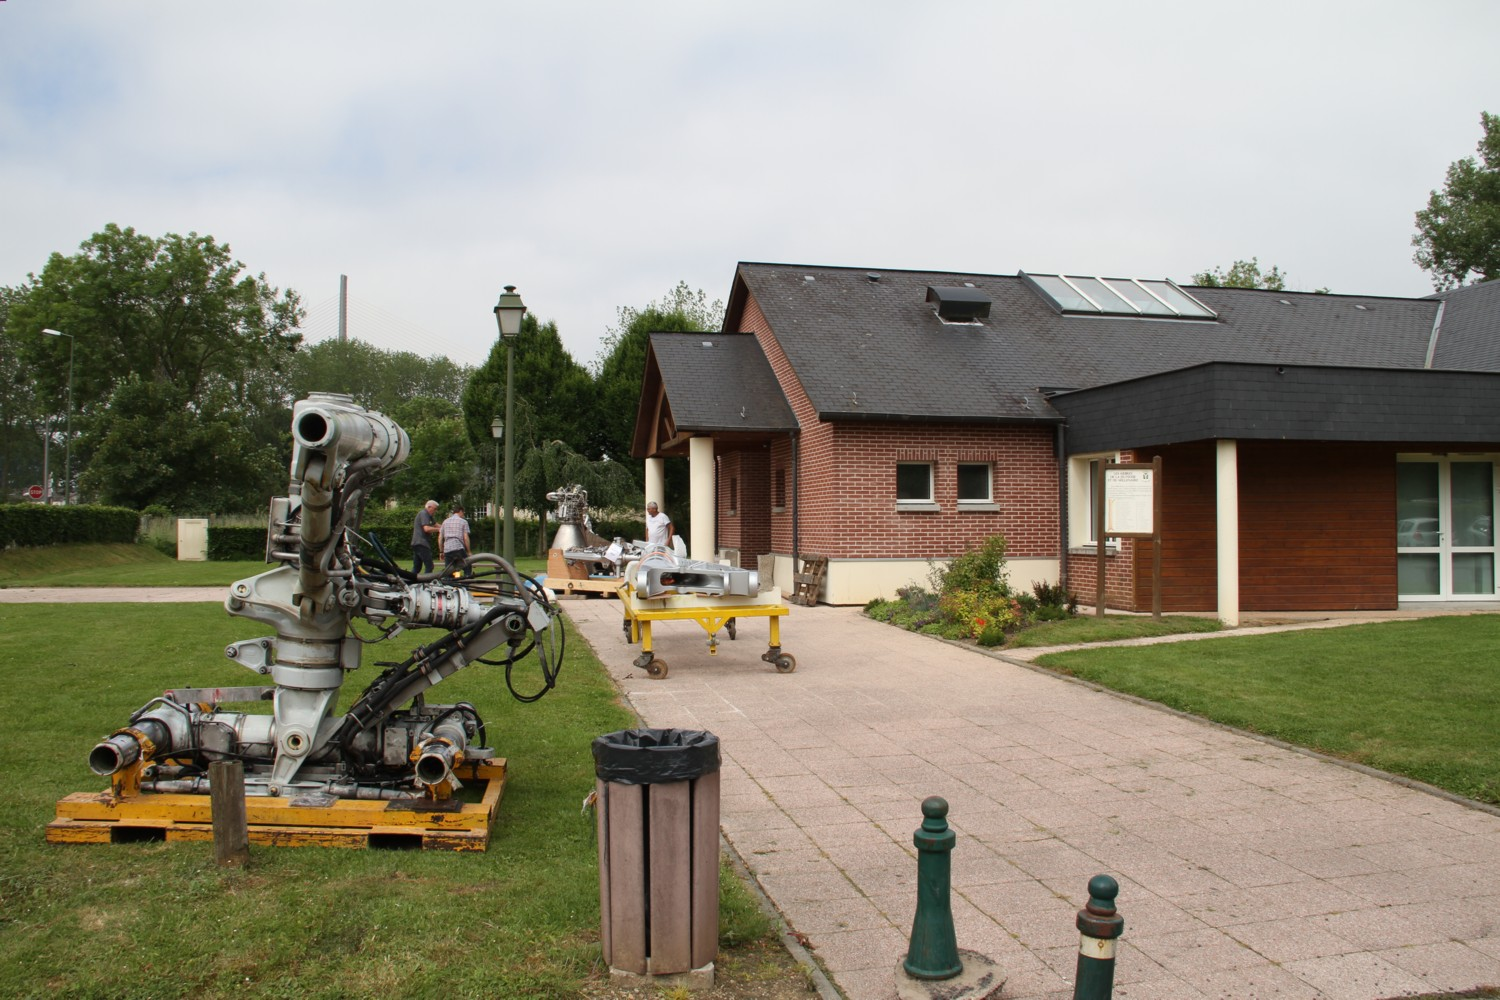 16 06 09 - 11h 35m 35s - expo apm st wandrille r